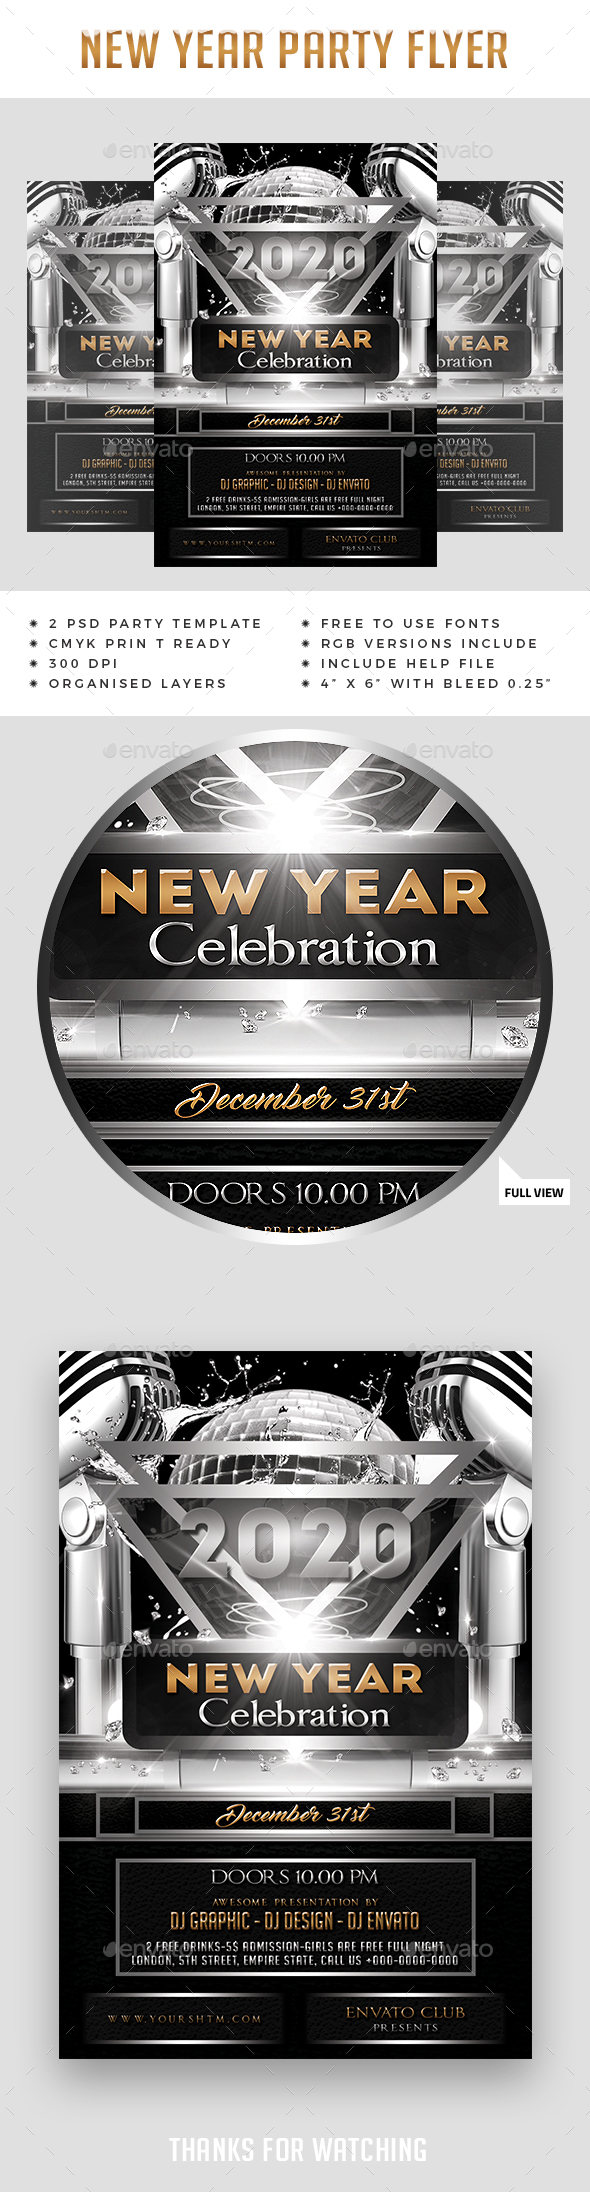 New Year Flyer Design